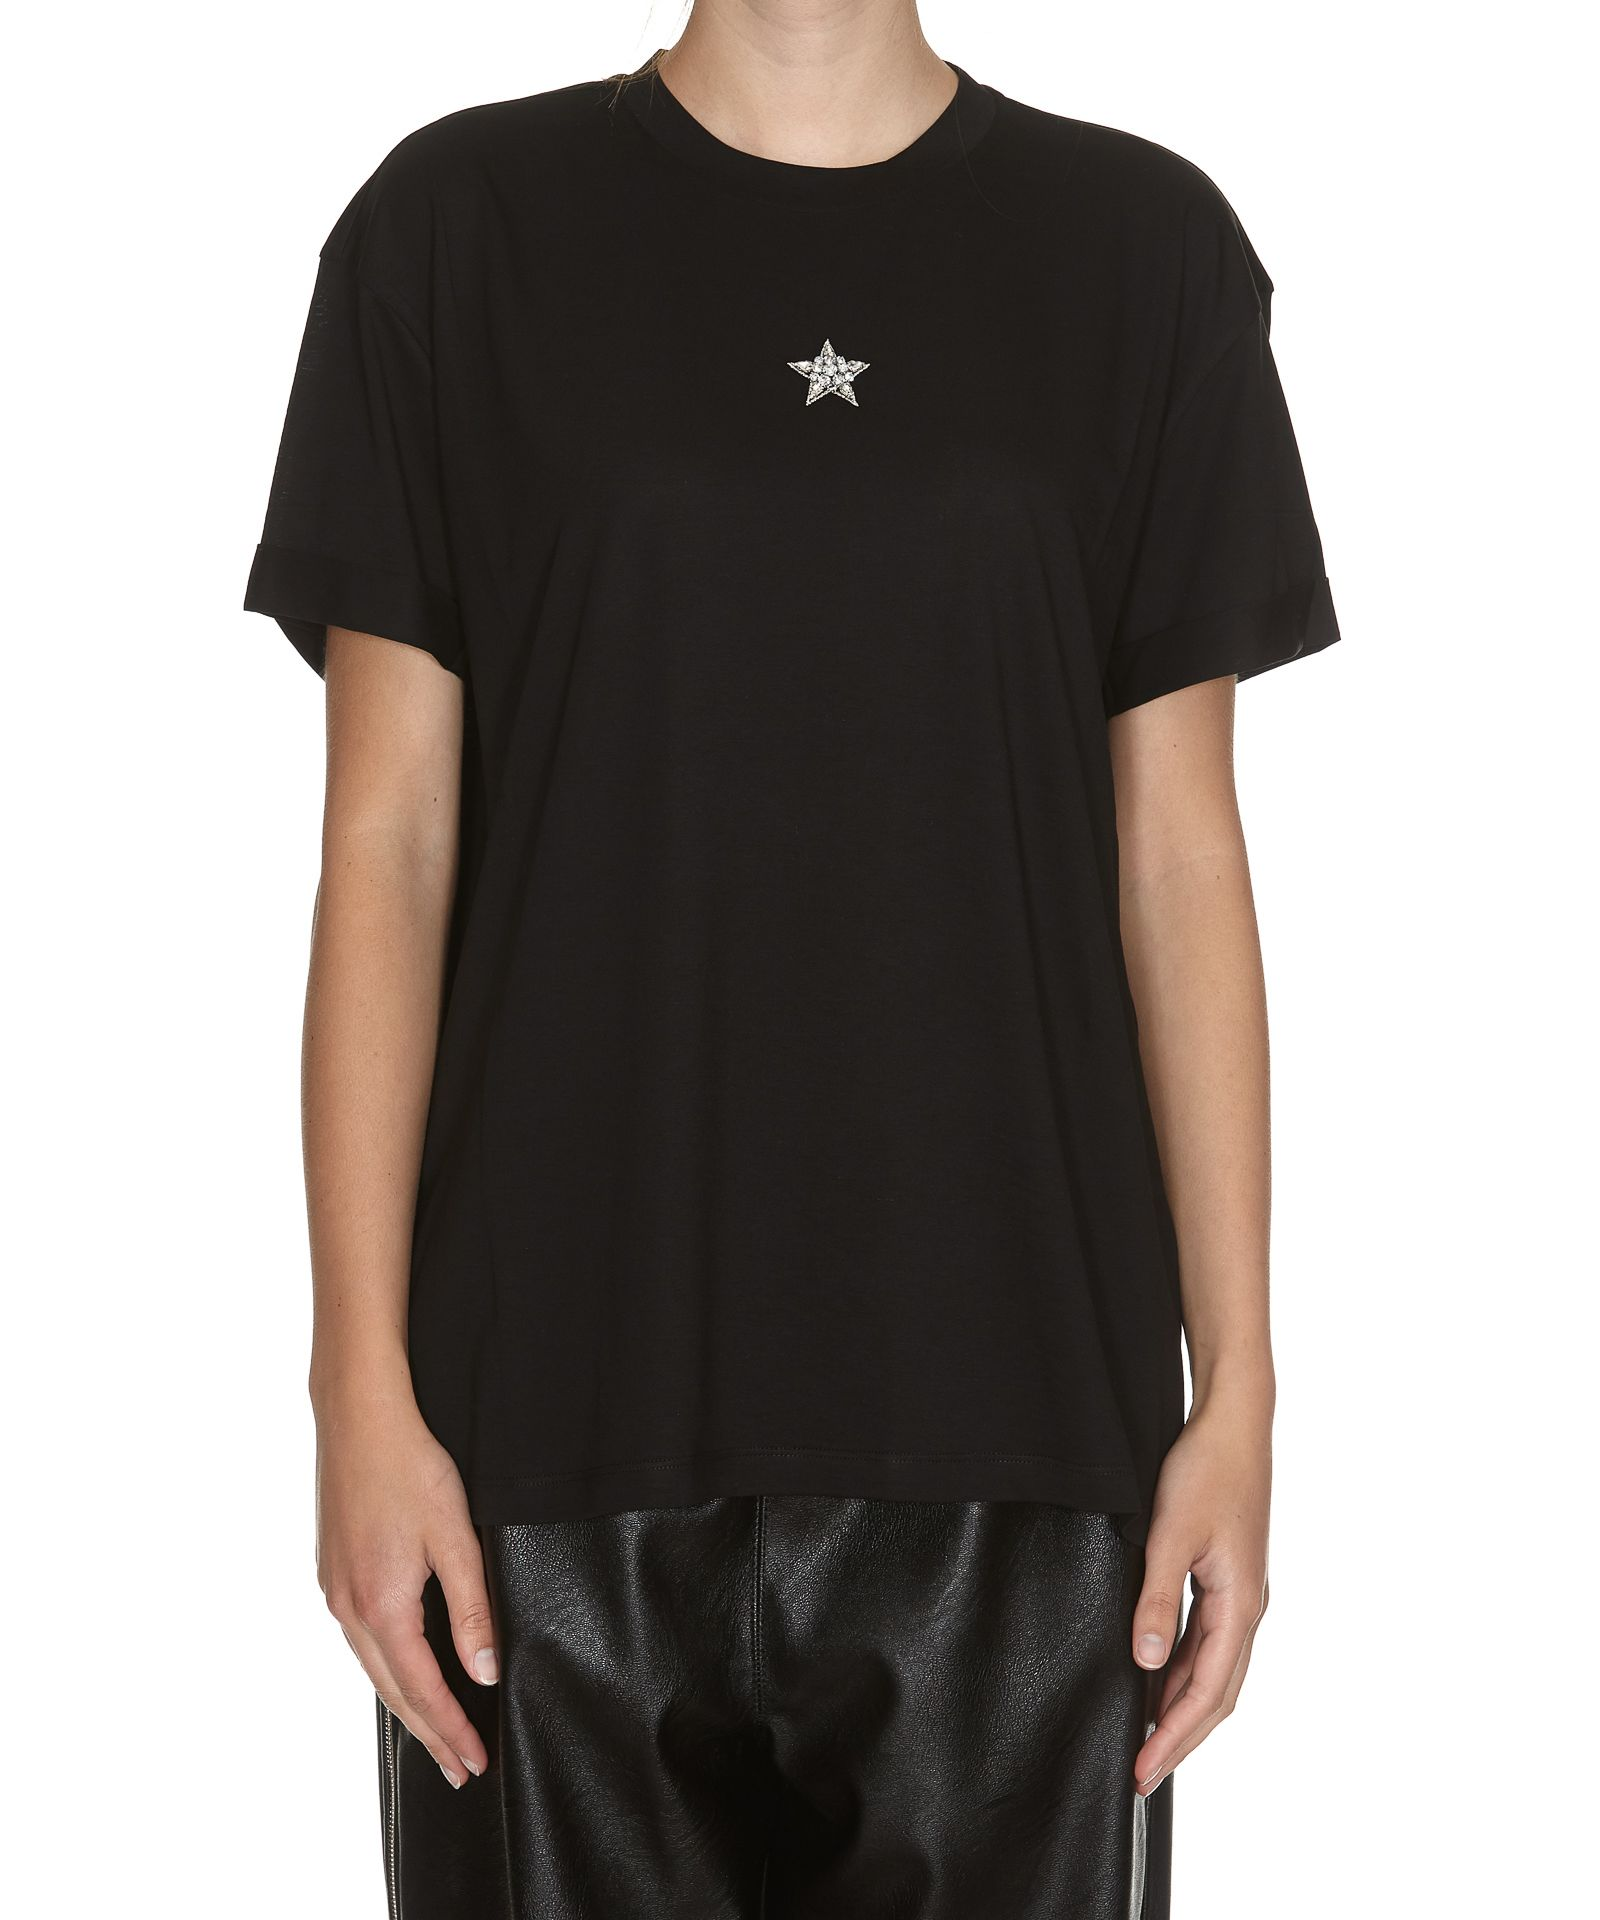 STELLA MCCARTNEY MICRO STAR T-SHIRT